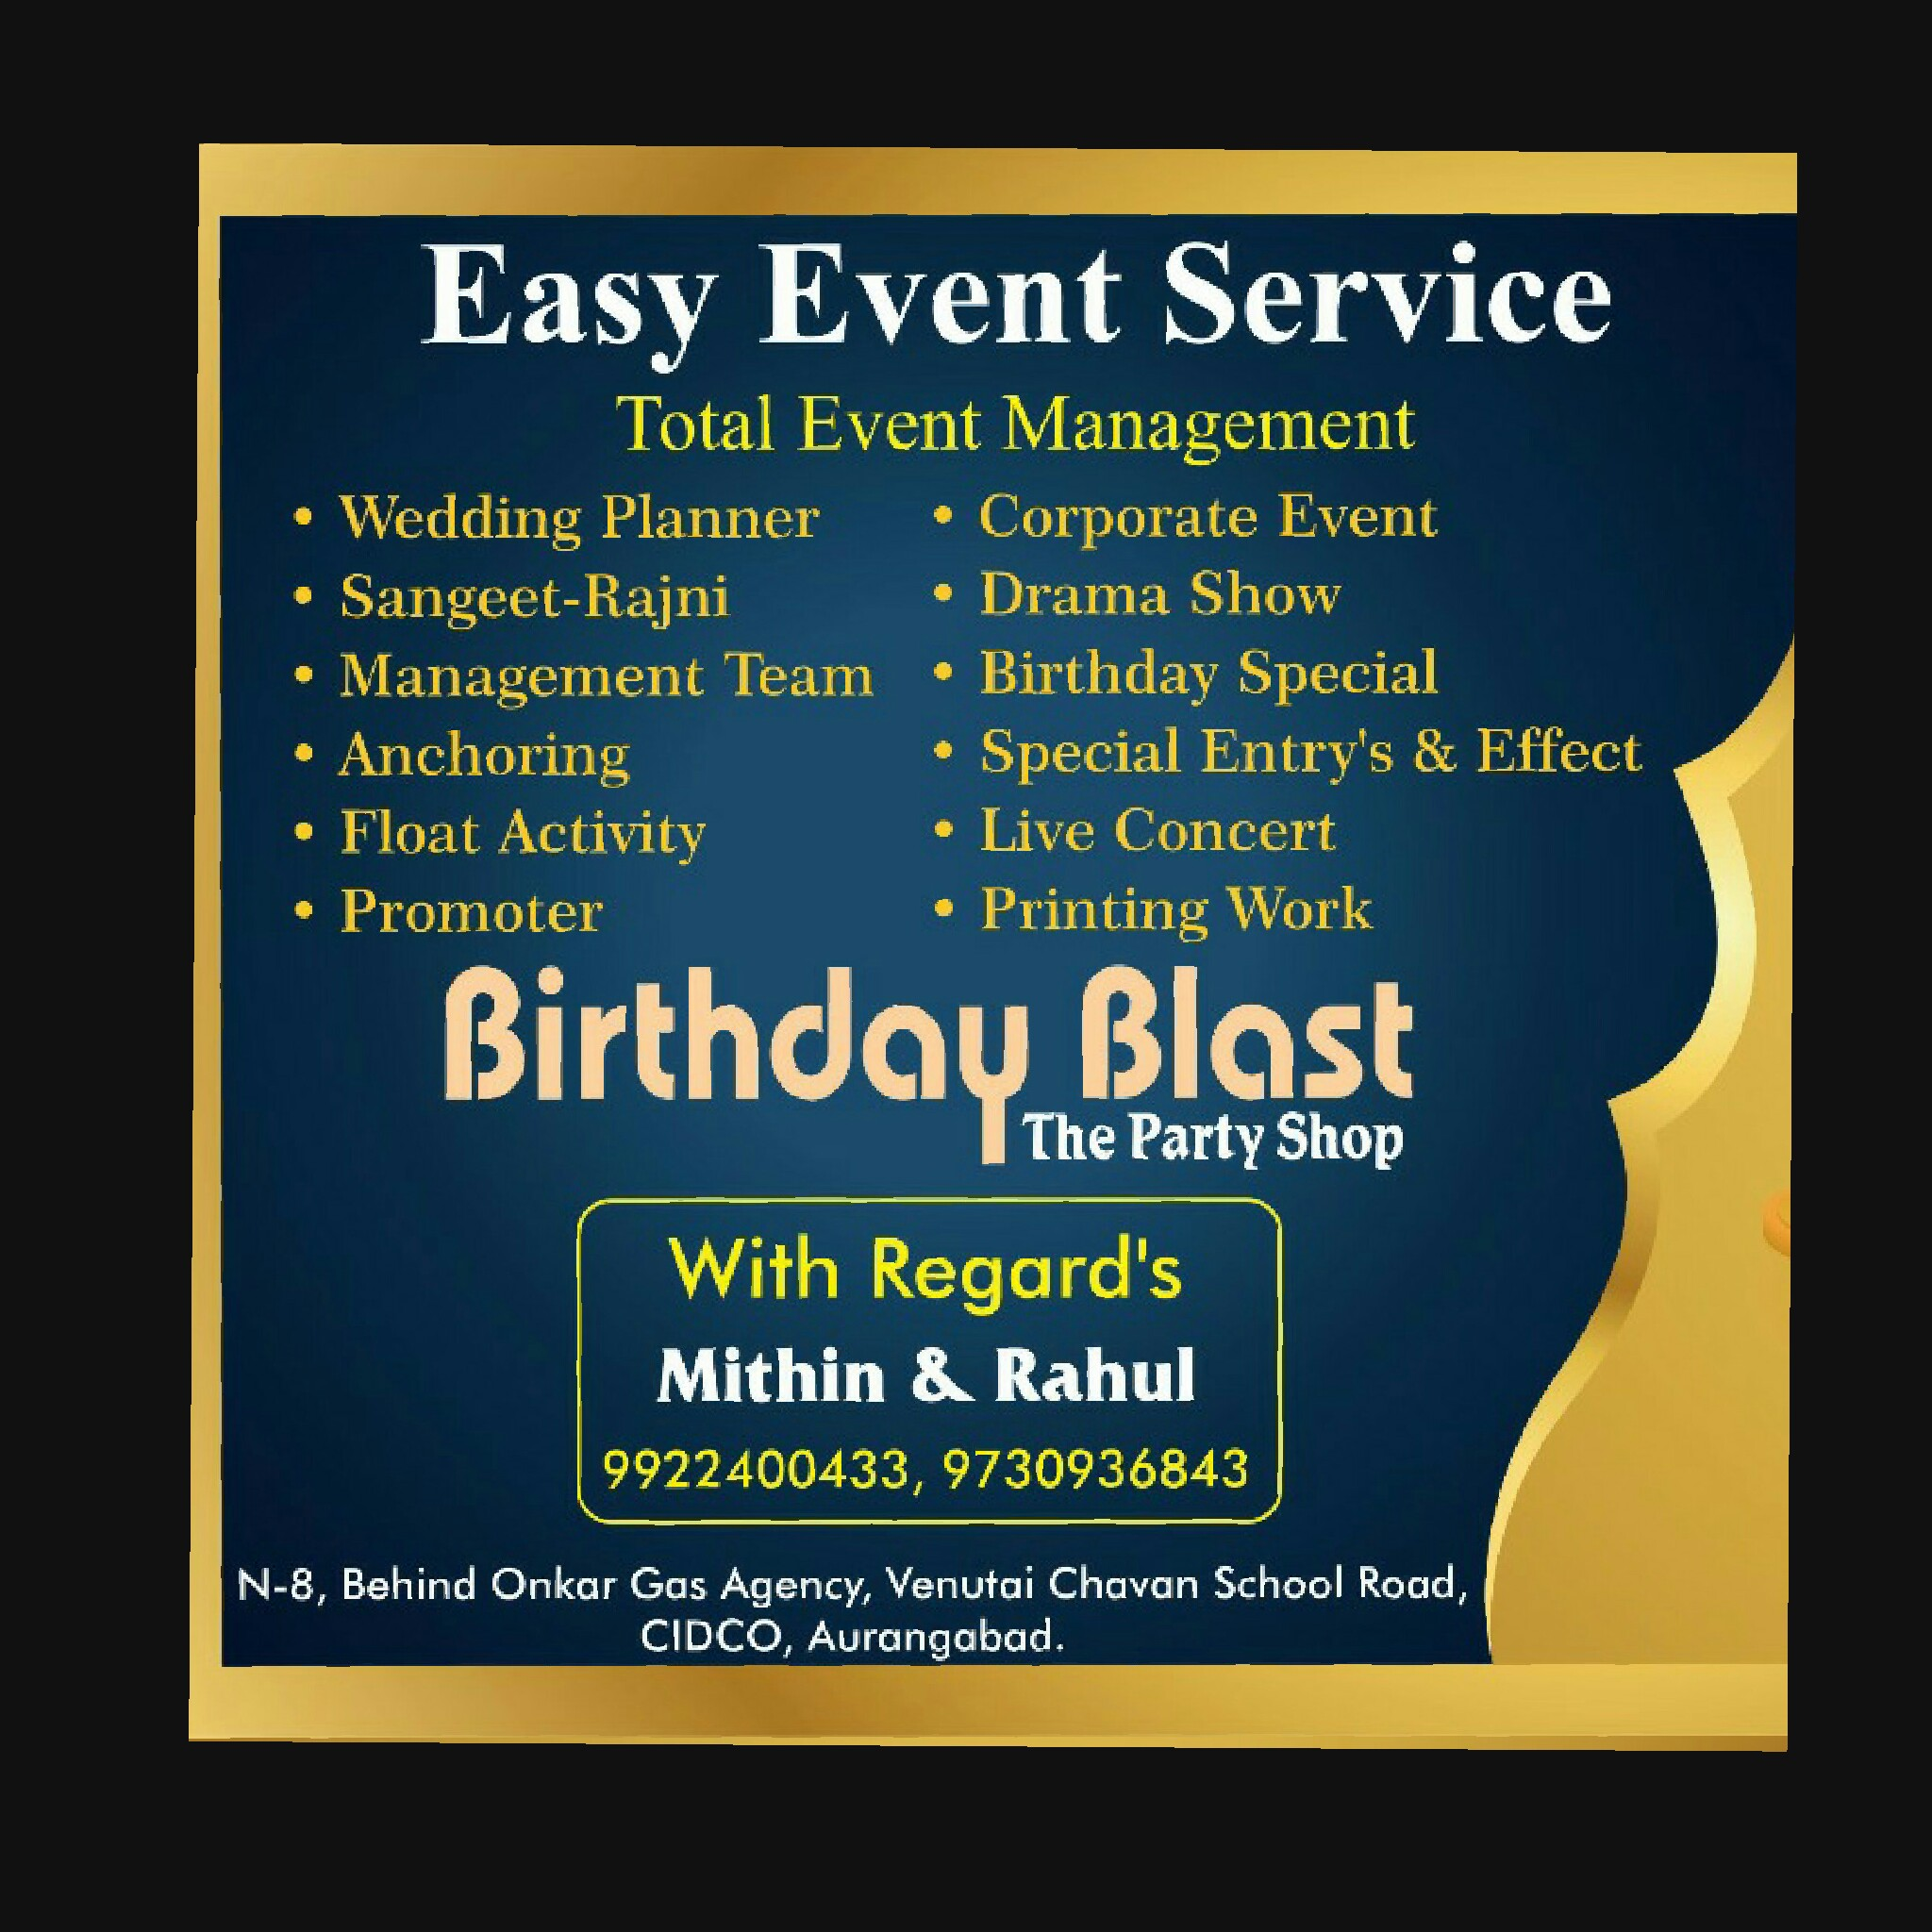 Easy Event Services_image1